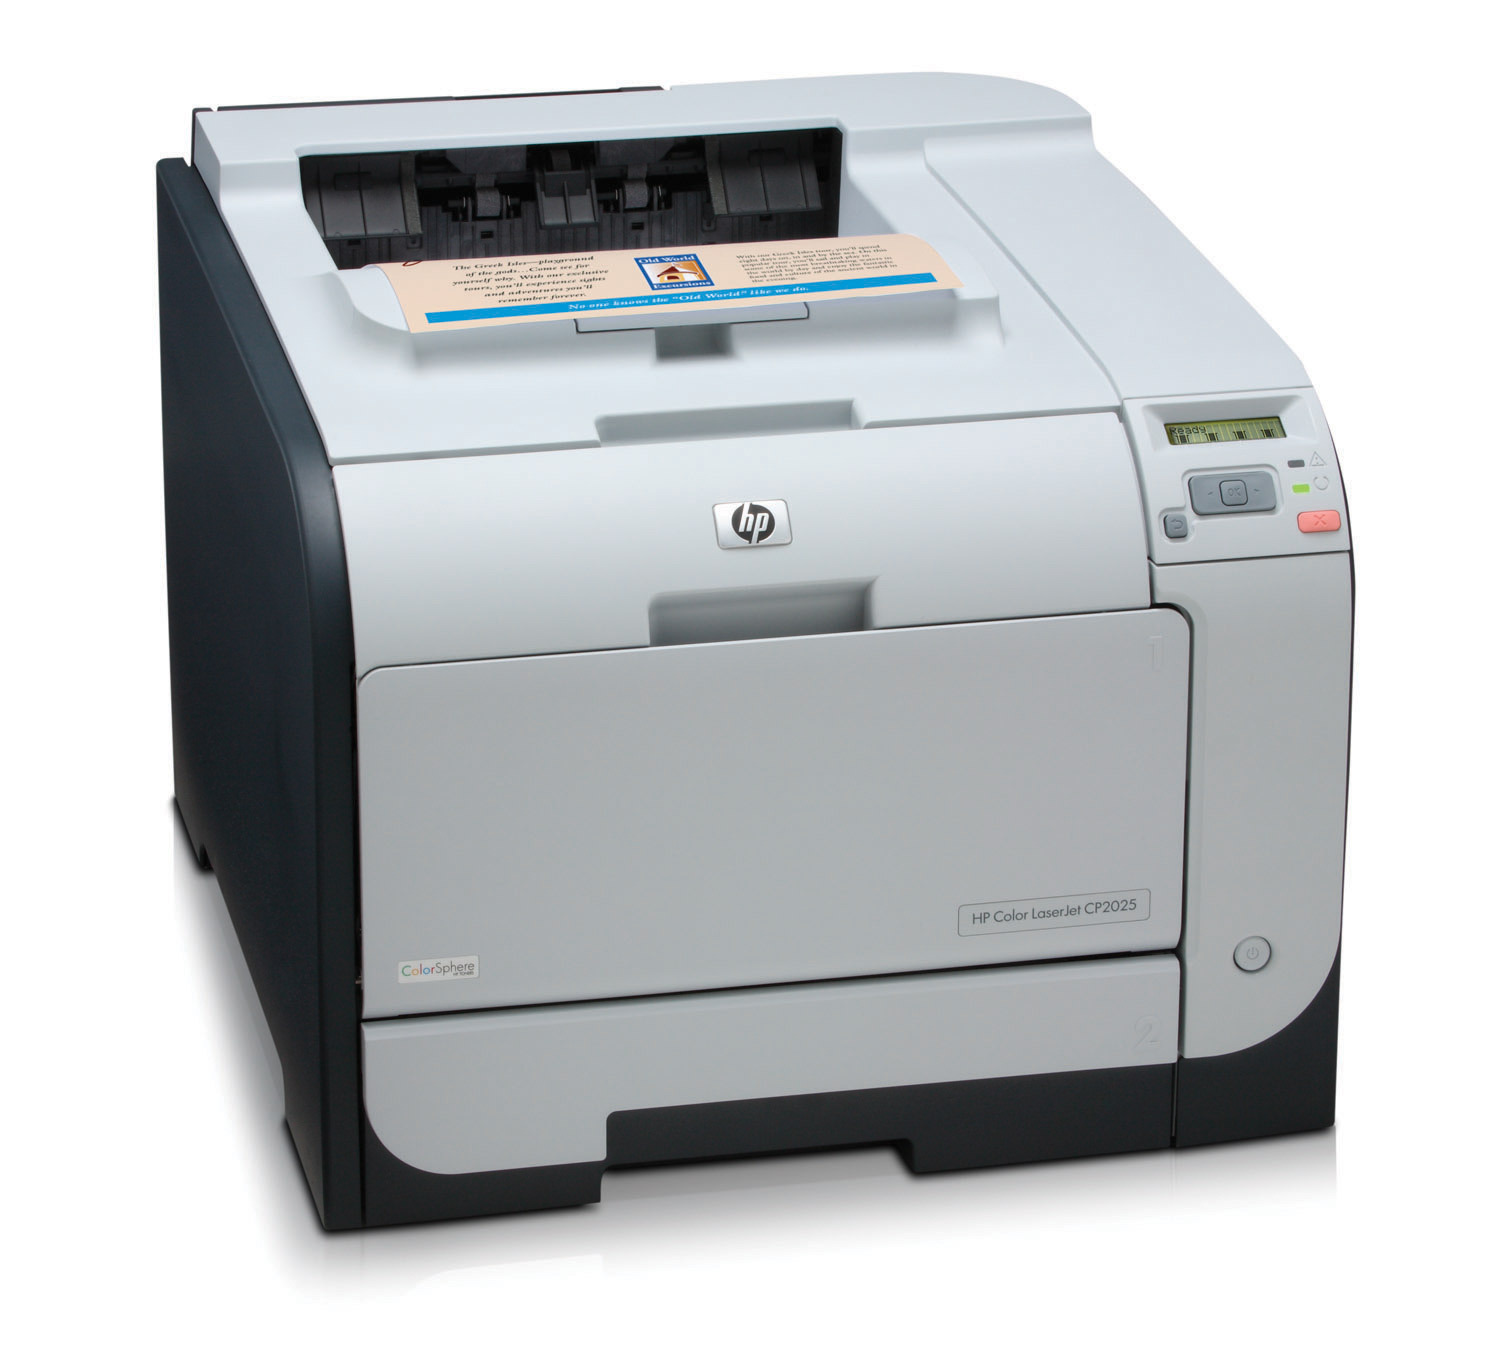 HP Color LaserJet CP2025n Printer